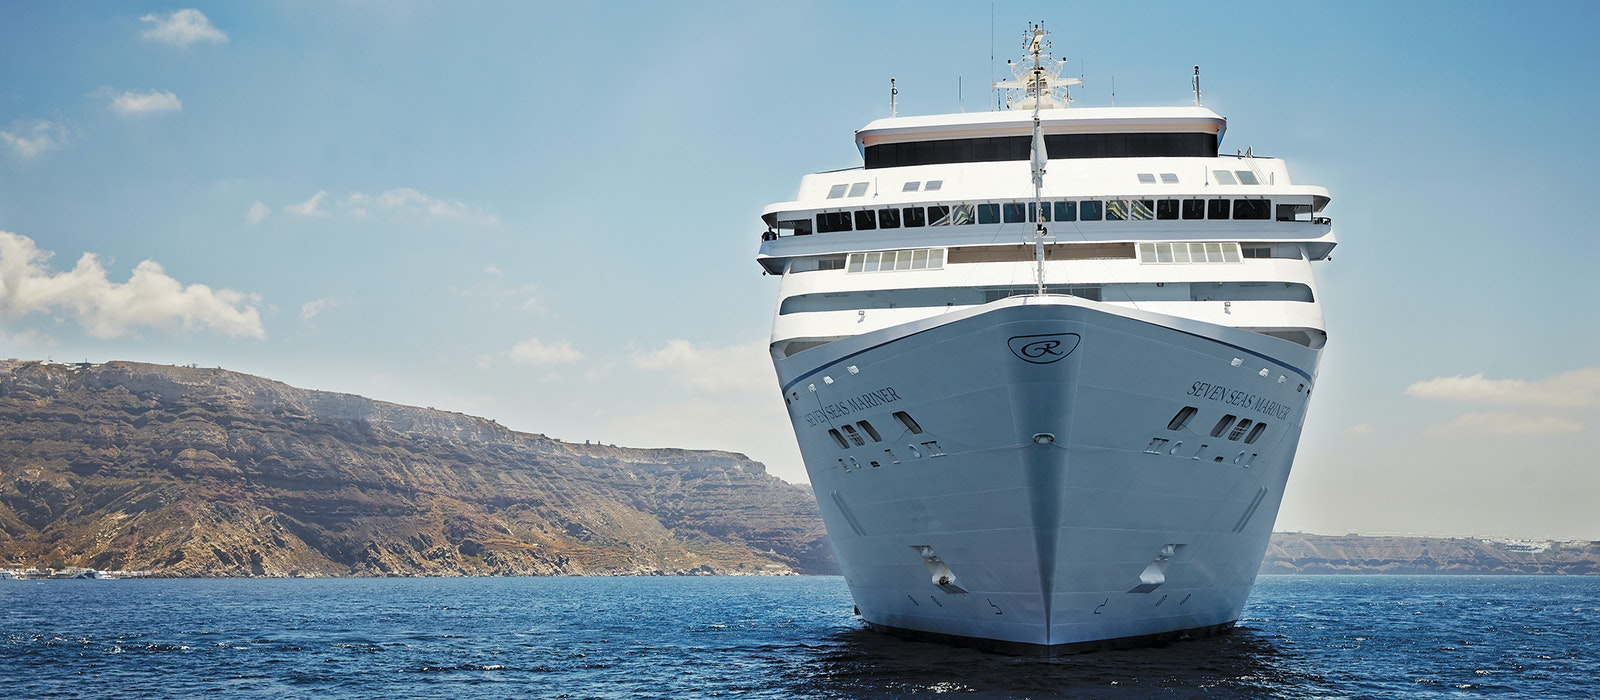 The all-suite Seven Seas Mariner will take you everywhere from Greece's medieval City of Rhodesto Australia's Great Barrier Reef.